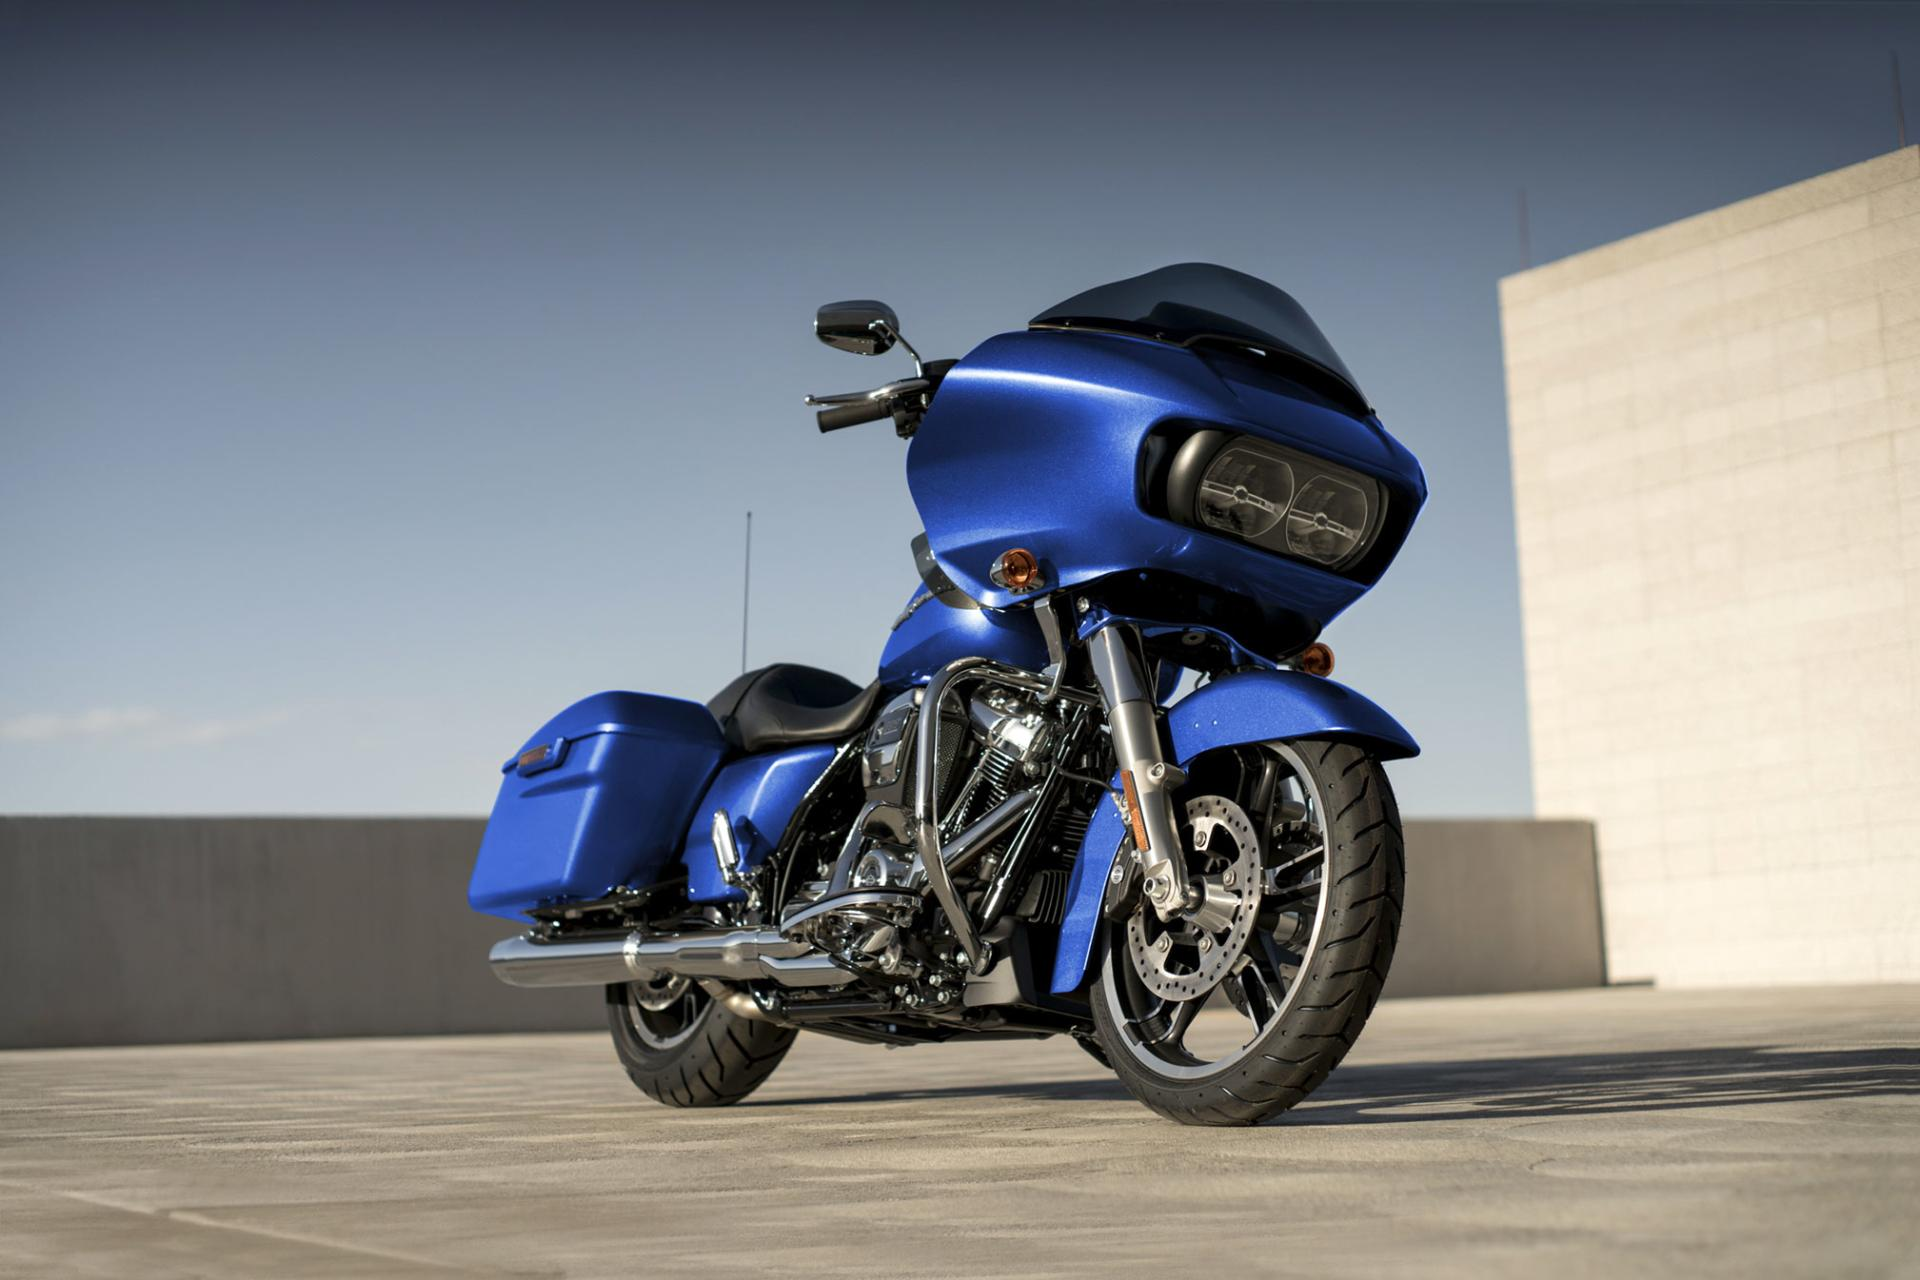 Harley-Davidson Road Glide wallpapers HD quality